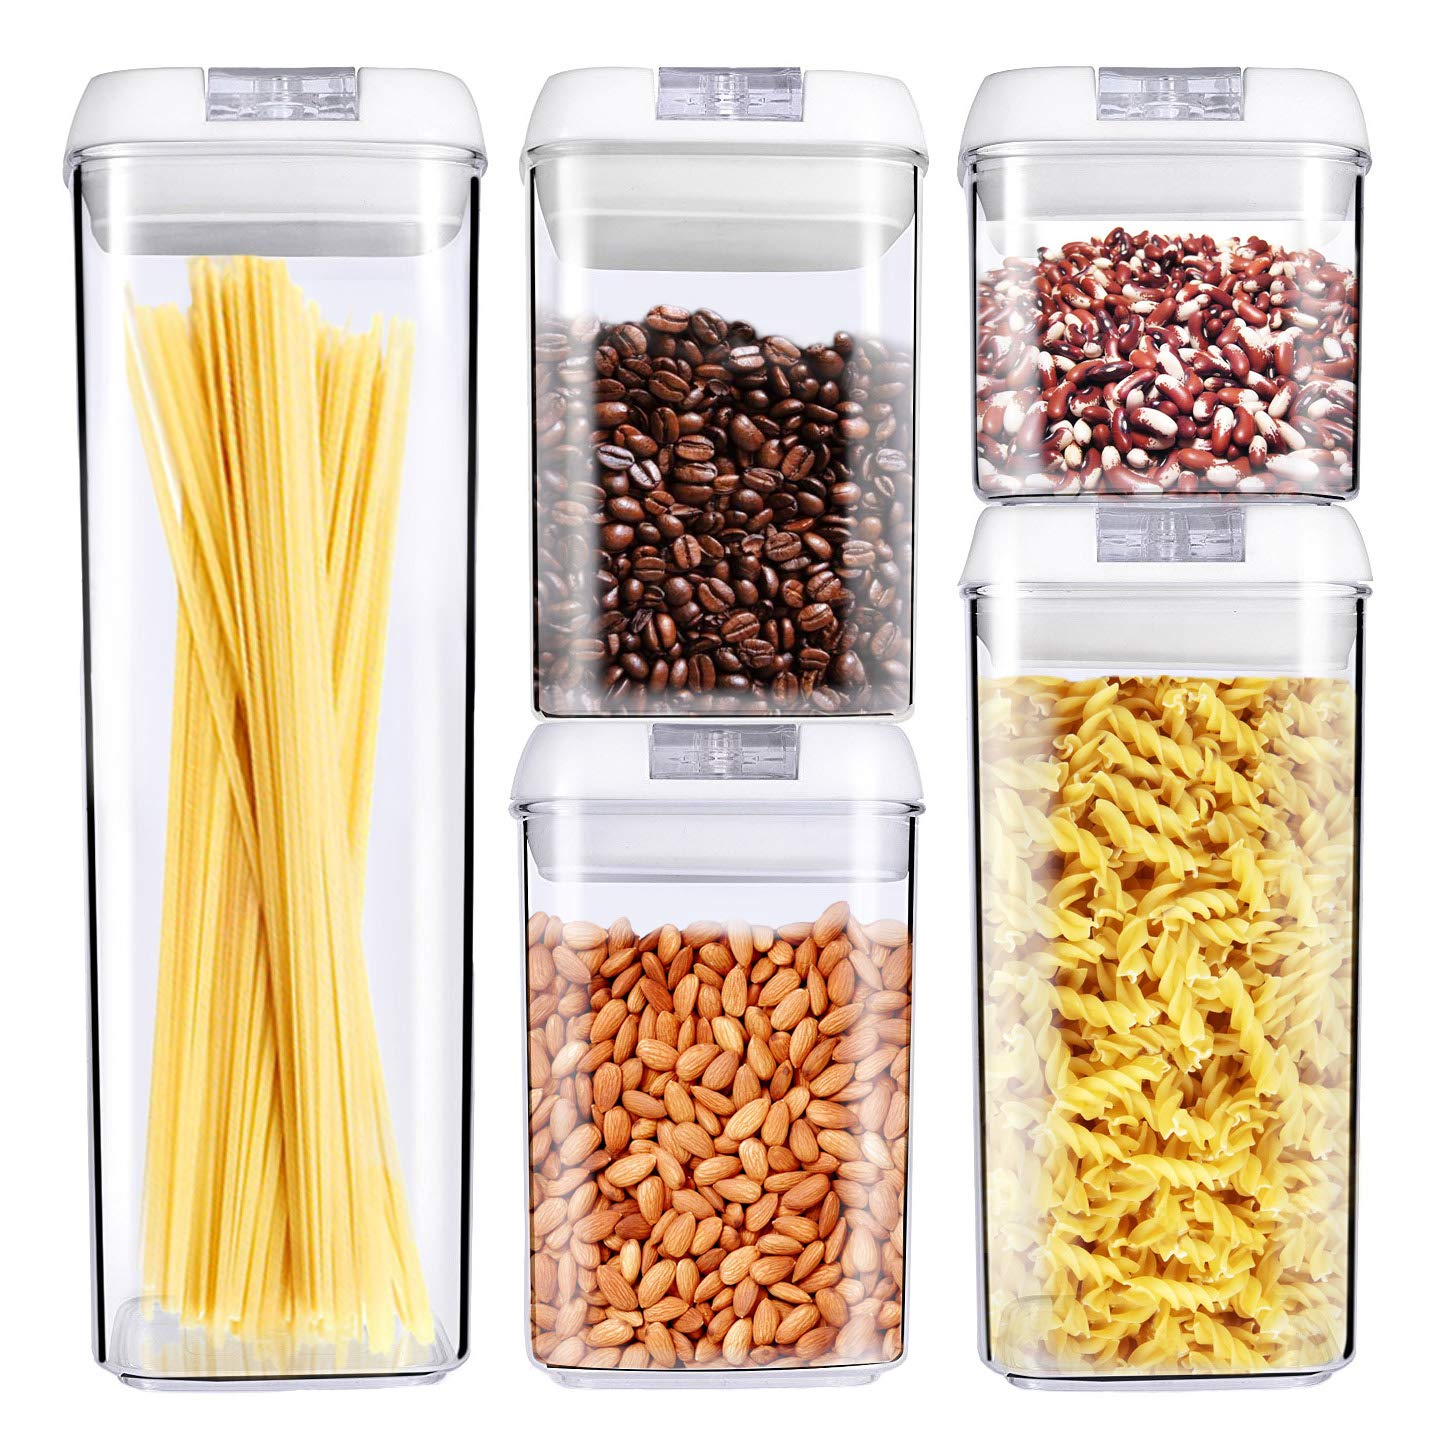 George Olivier Stackable Food Storage Containers with Airtight Lids, Set of 5 - BPA Free & Food Grade Plastic - Spaghetti & Cereal Dispenser